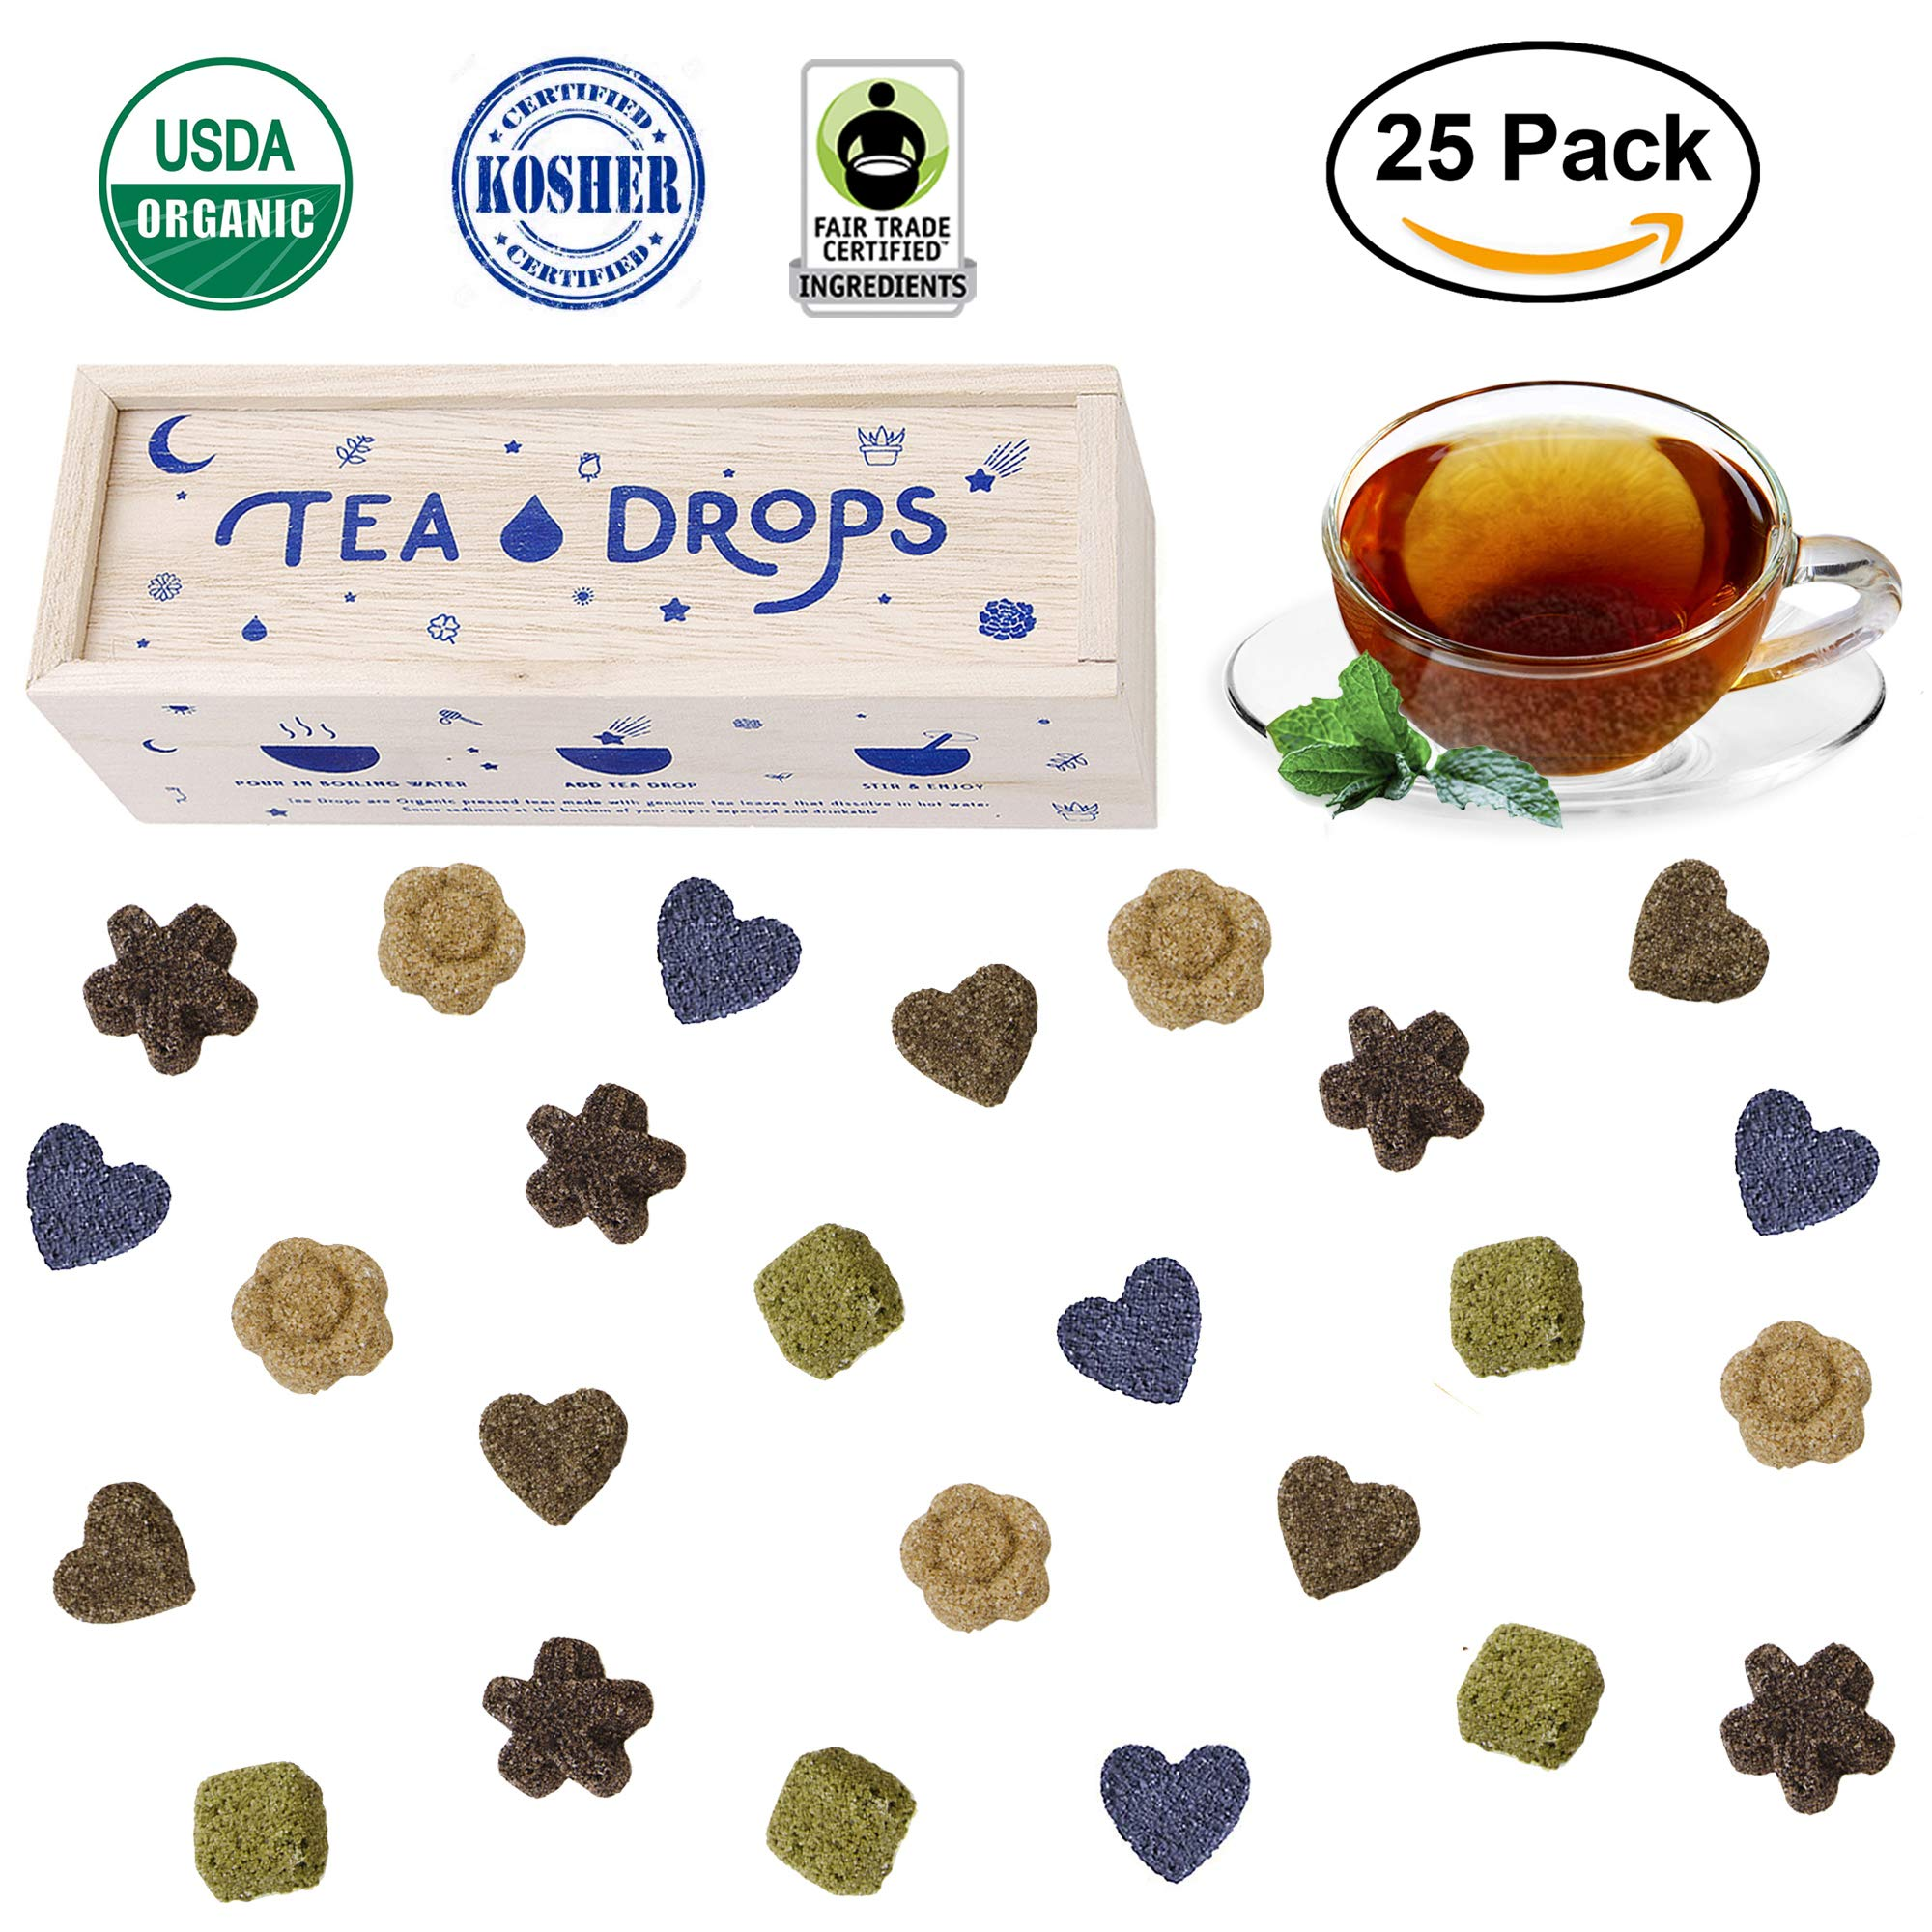 Sweetened Organic Loose Leaf Tea | Deluxe Herbal Sampler Assortment Box | Instant Pressed Teas Eliminate the Need for Teabags and Sweetener | Tea Lovers Gift | Delicious Hot or Iced | By Tea Drops by Tea Drops